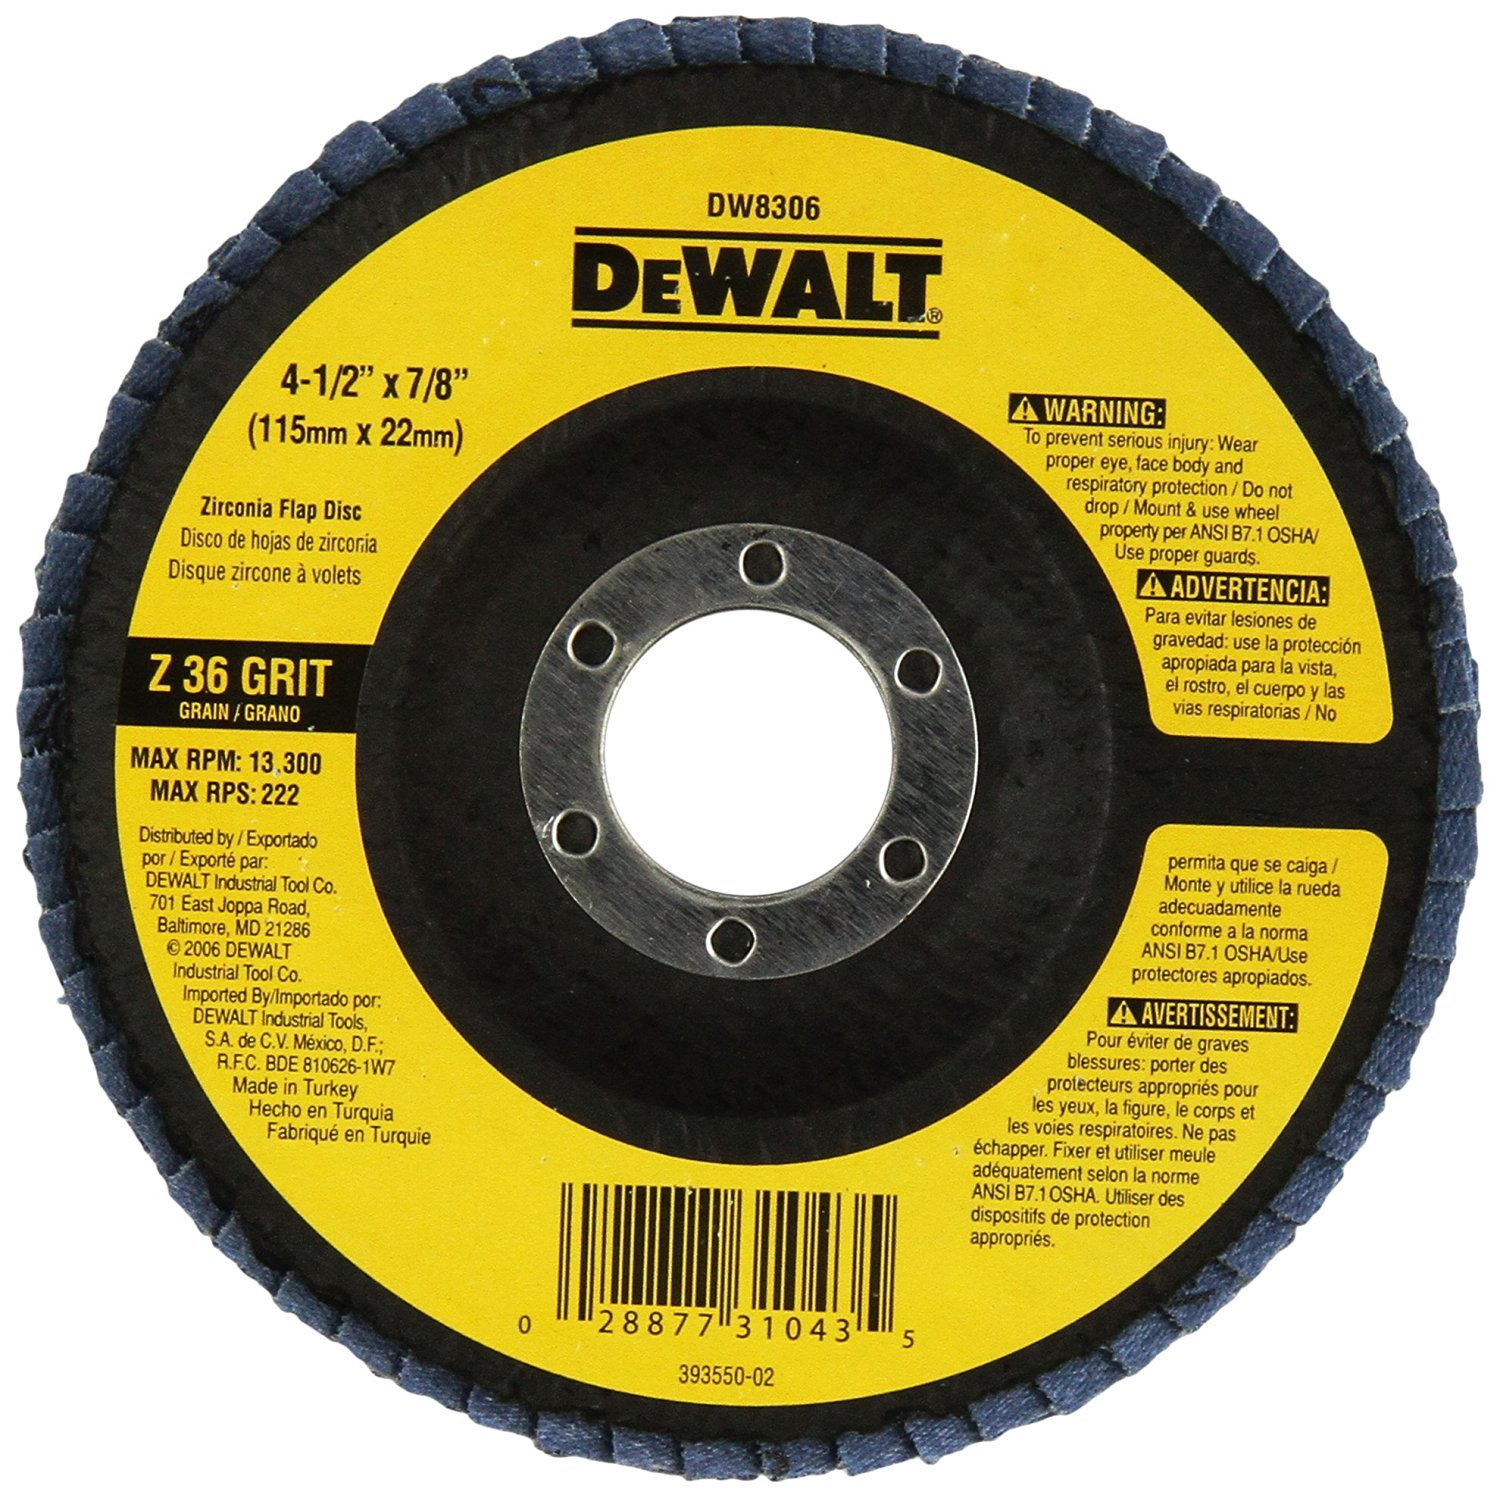 Dewalt DW8306 4-1/2-Inch by 7/8-Inch 36 Grit Zirconia Angle Grinder Flap Disc 10 Pack: Amazon.com: Industrial & Scientific